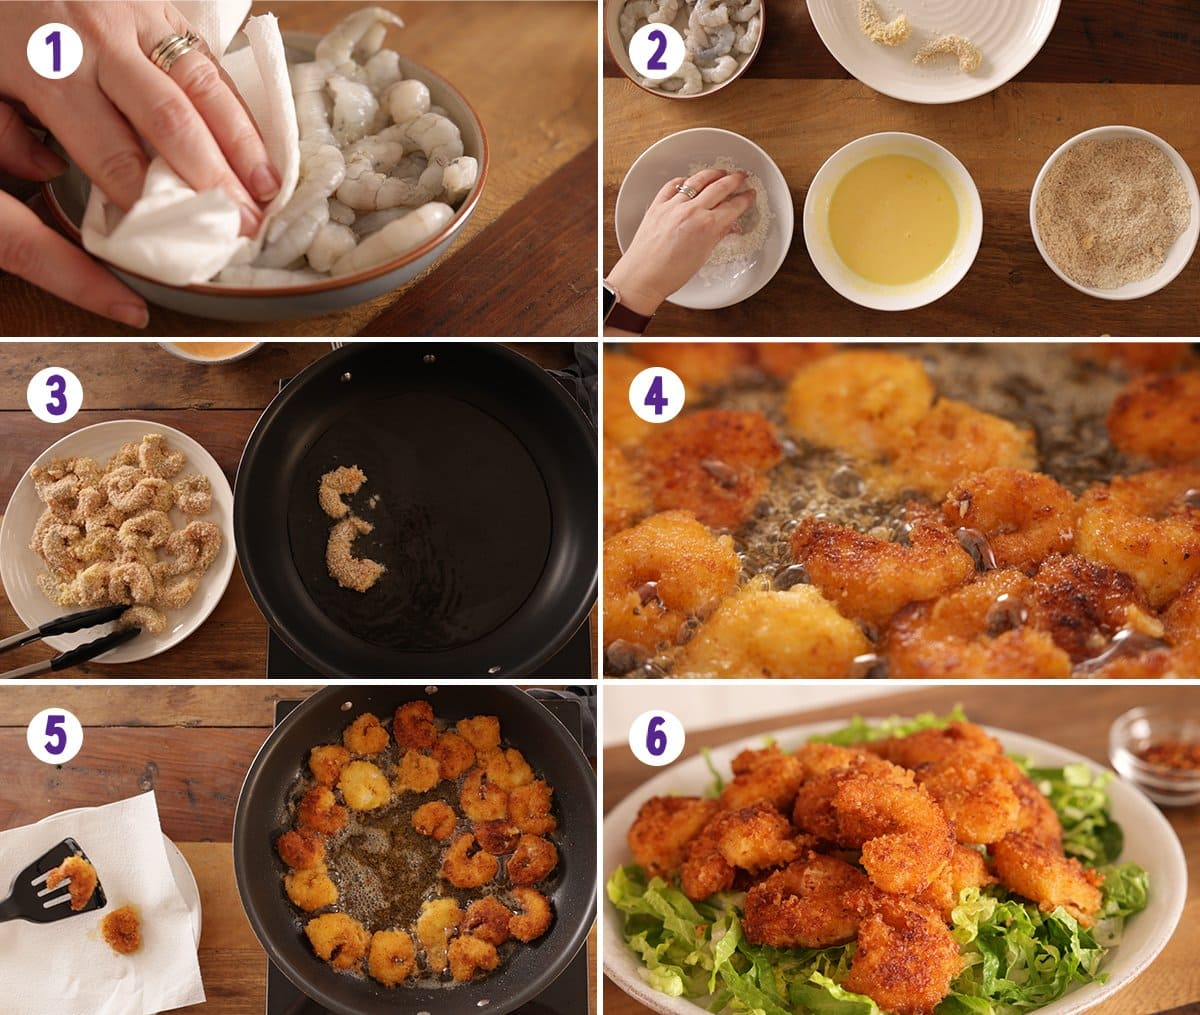 6 image collage showing how to make crispy prawns.